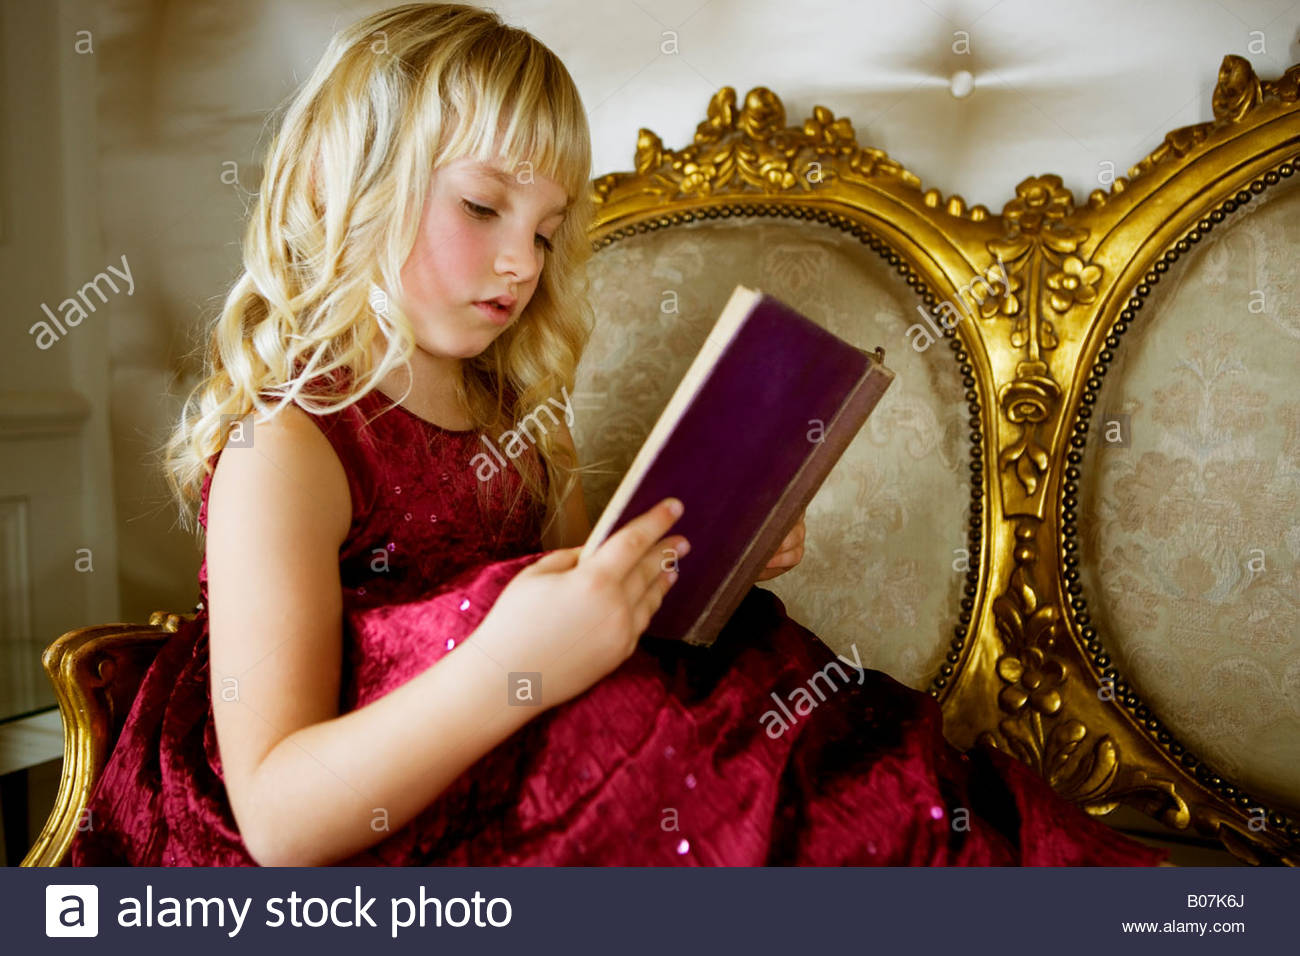 Little girl in a party dress, reading a book - Stock Image